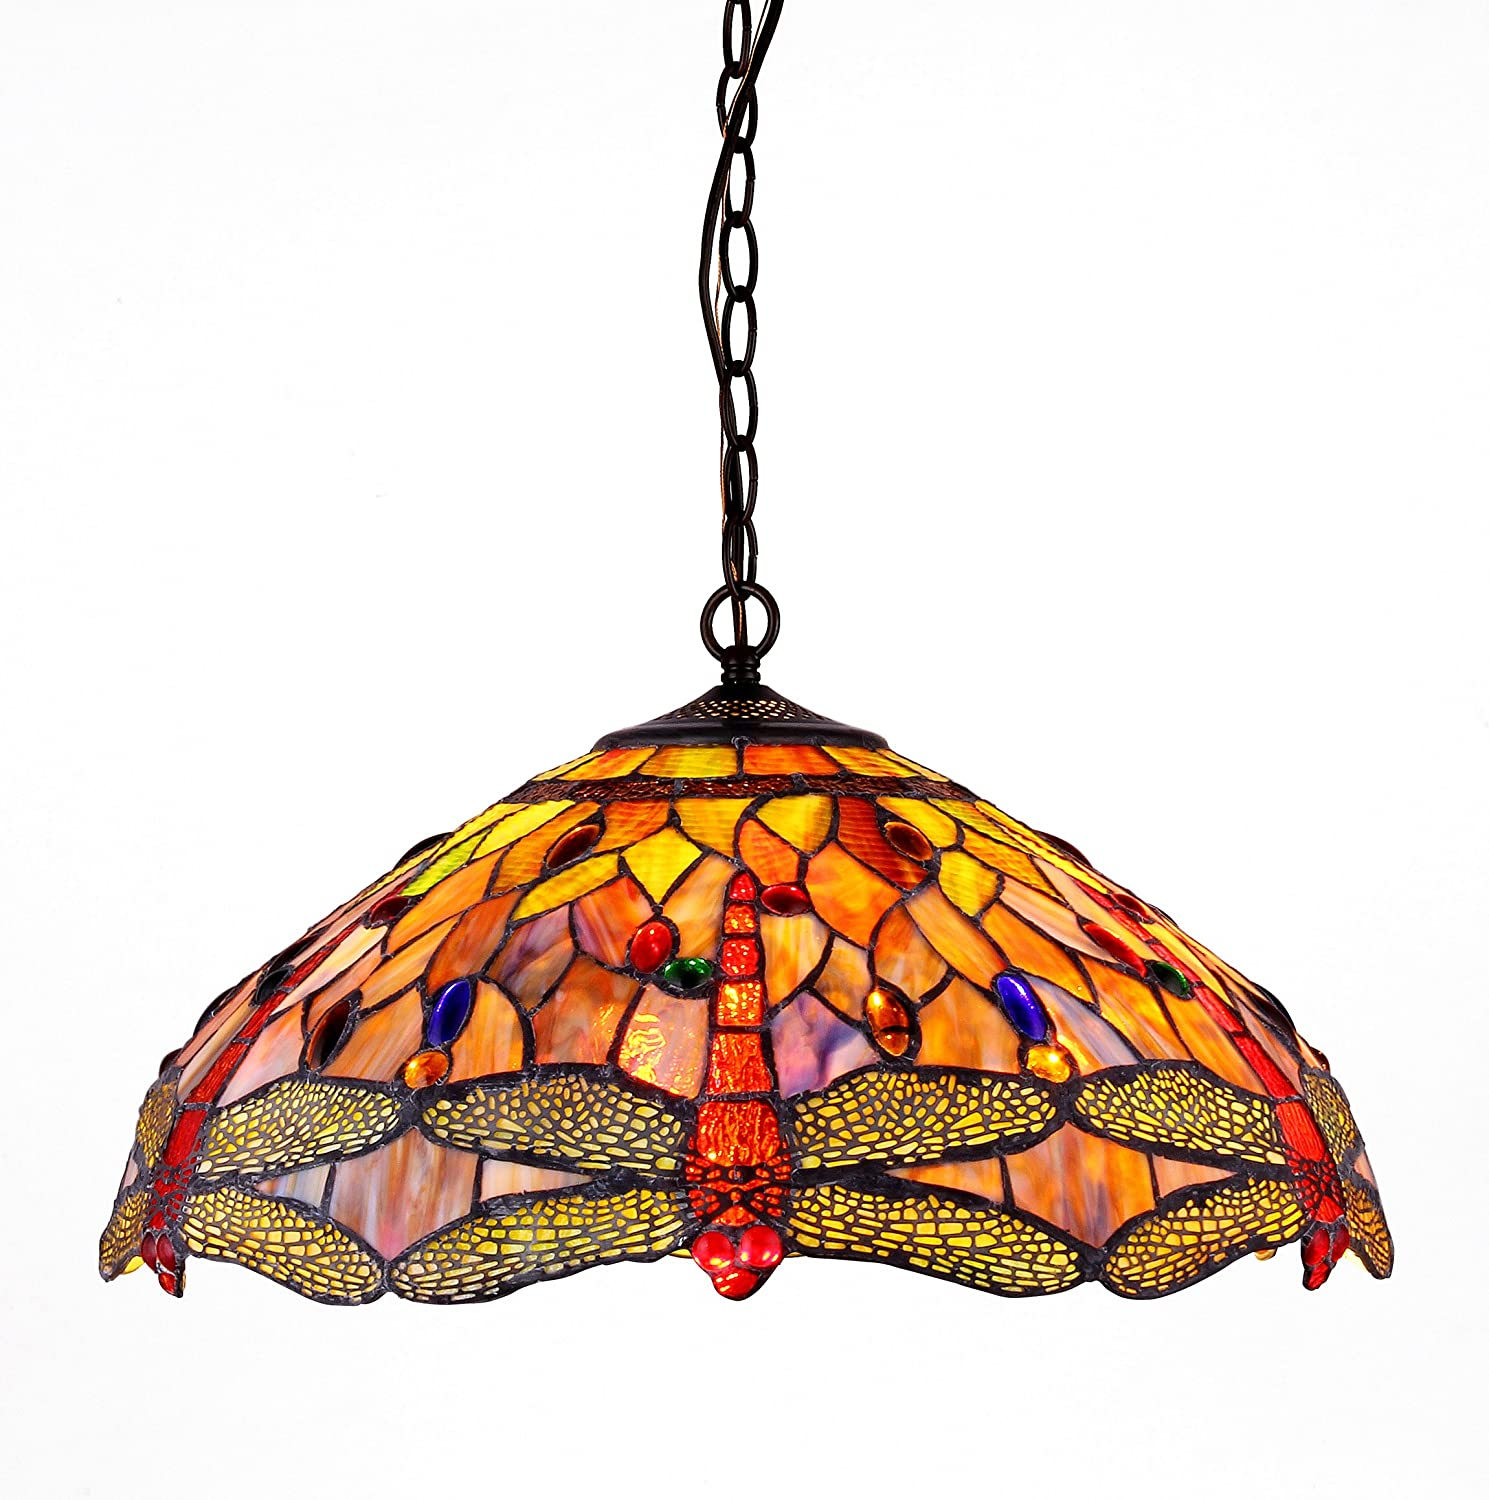 inverted image style light ceilings pendant ceiling tiffany dragonfly type large lamps green interiors lighting